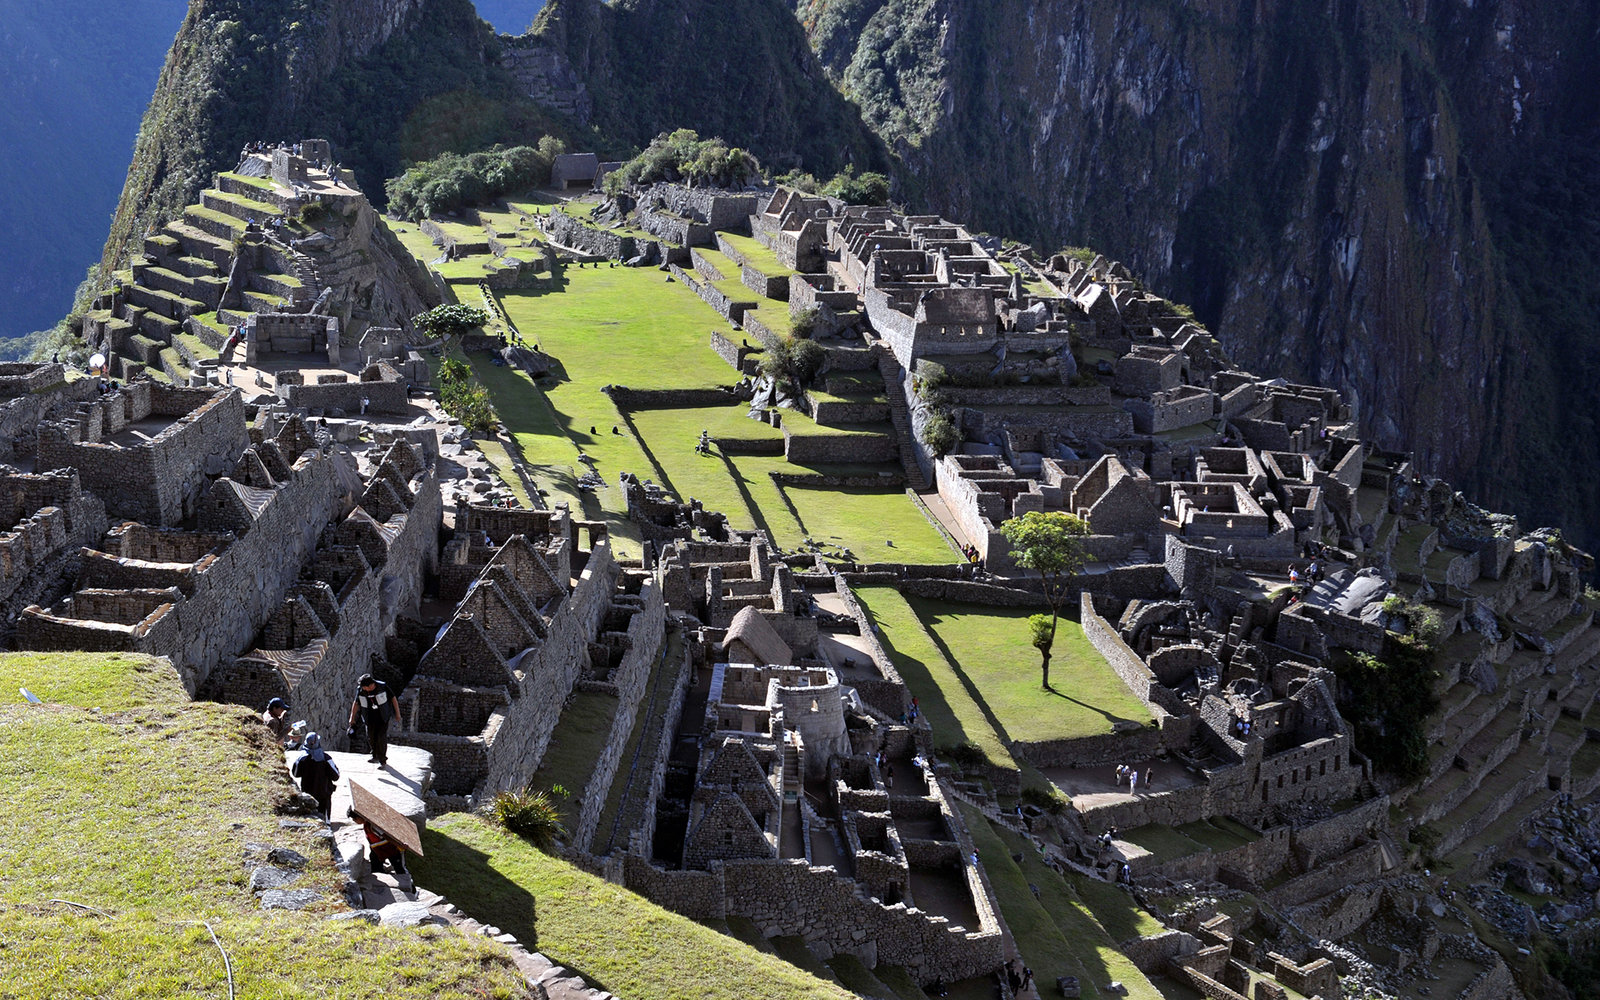 Tourists walk among the ruins of the Machu Picchu citadel, 130 km northwest of Cusco, Peru on July 6, 2011. The Inca compound is being prepared for the centennial commemoration of its discovery by American adventurer and archaeologist Hiram Bingham in 191